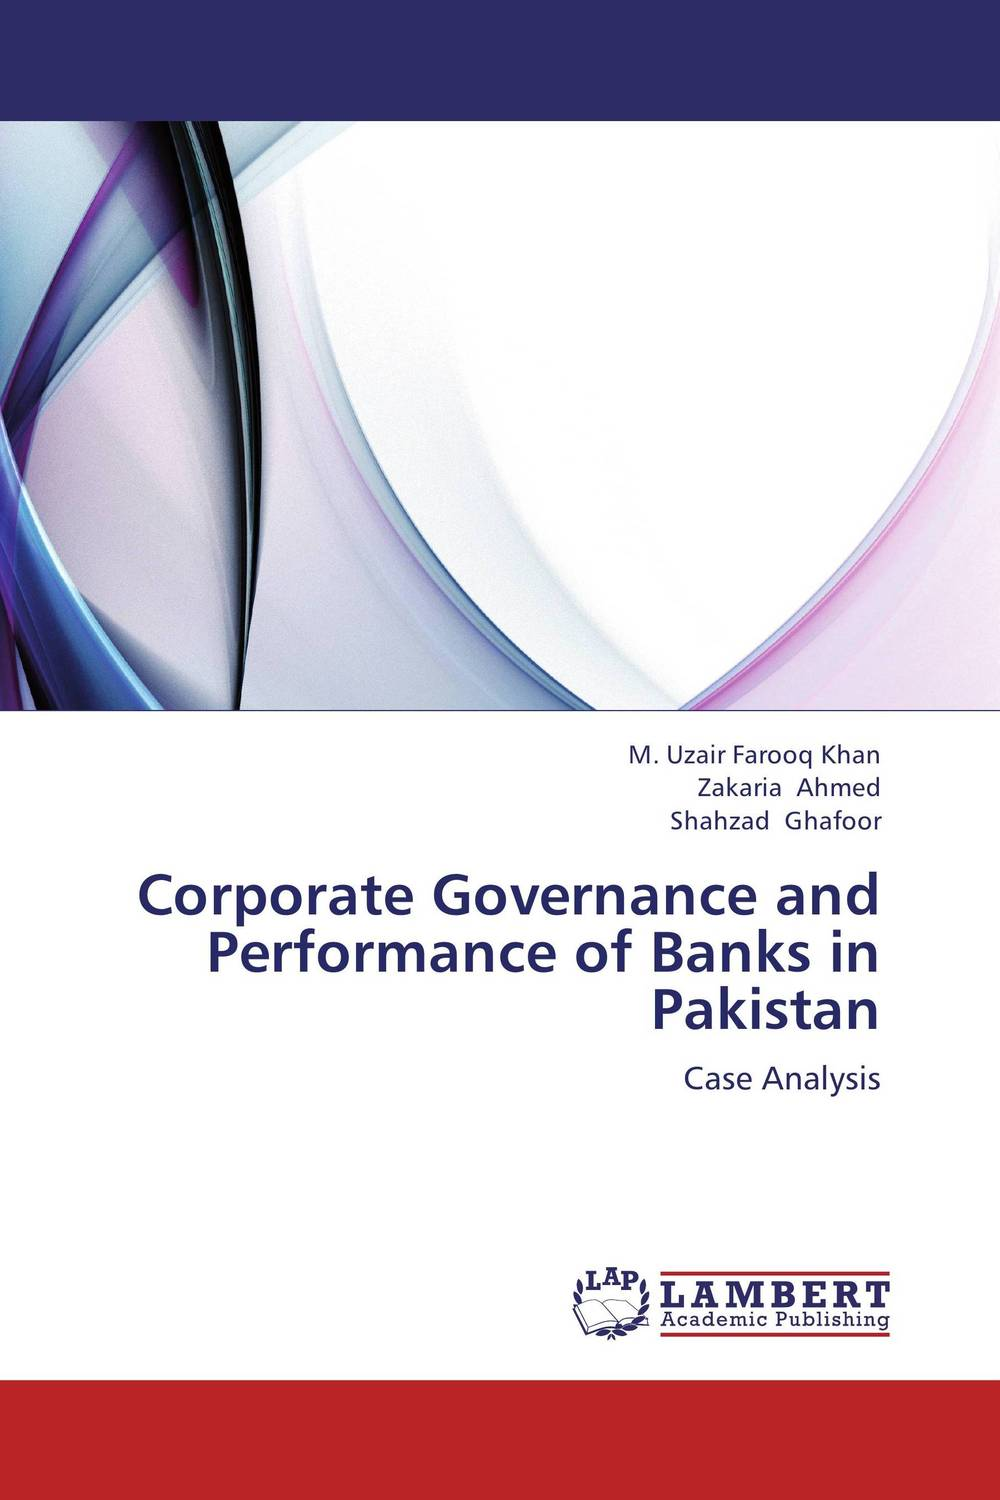 Corporate Governance and Performance of Banks in Pakistan corporate governance capital structure and firm value